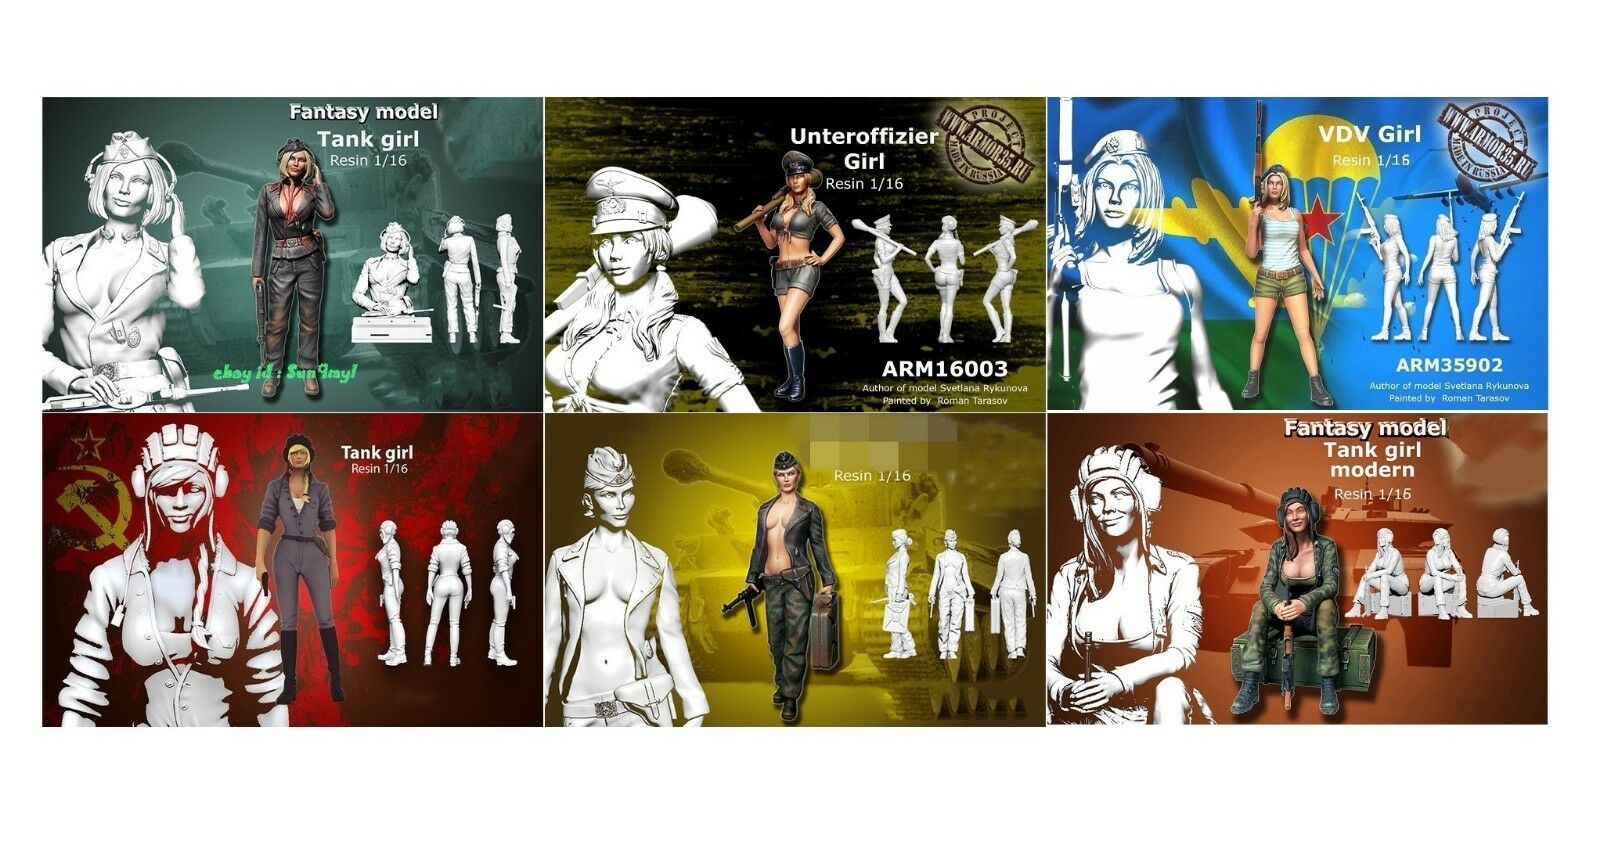 1 16 Scale Resin Figures Figures Figures Models Kits 6 pcs Sexy Girls Soldier Tank Unpainted d22